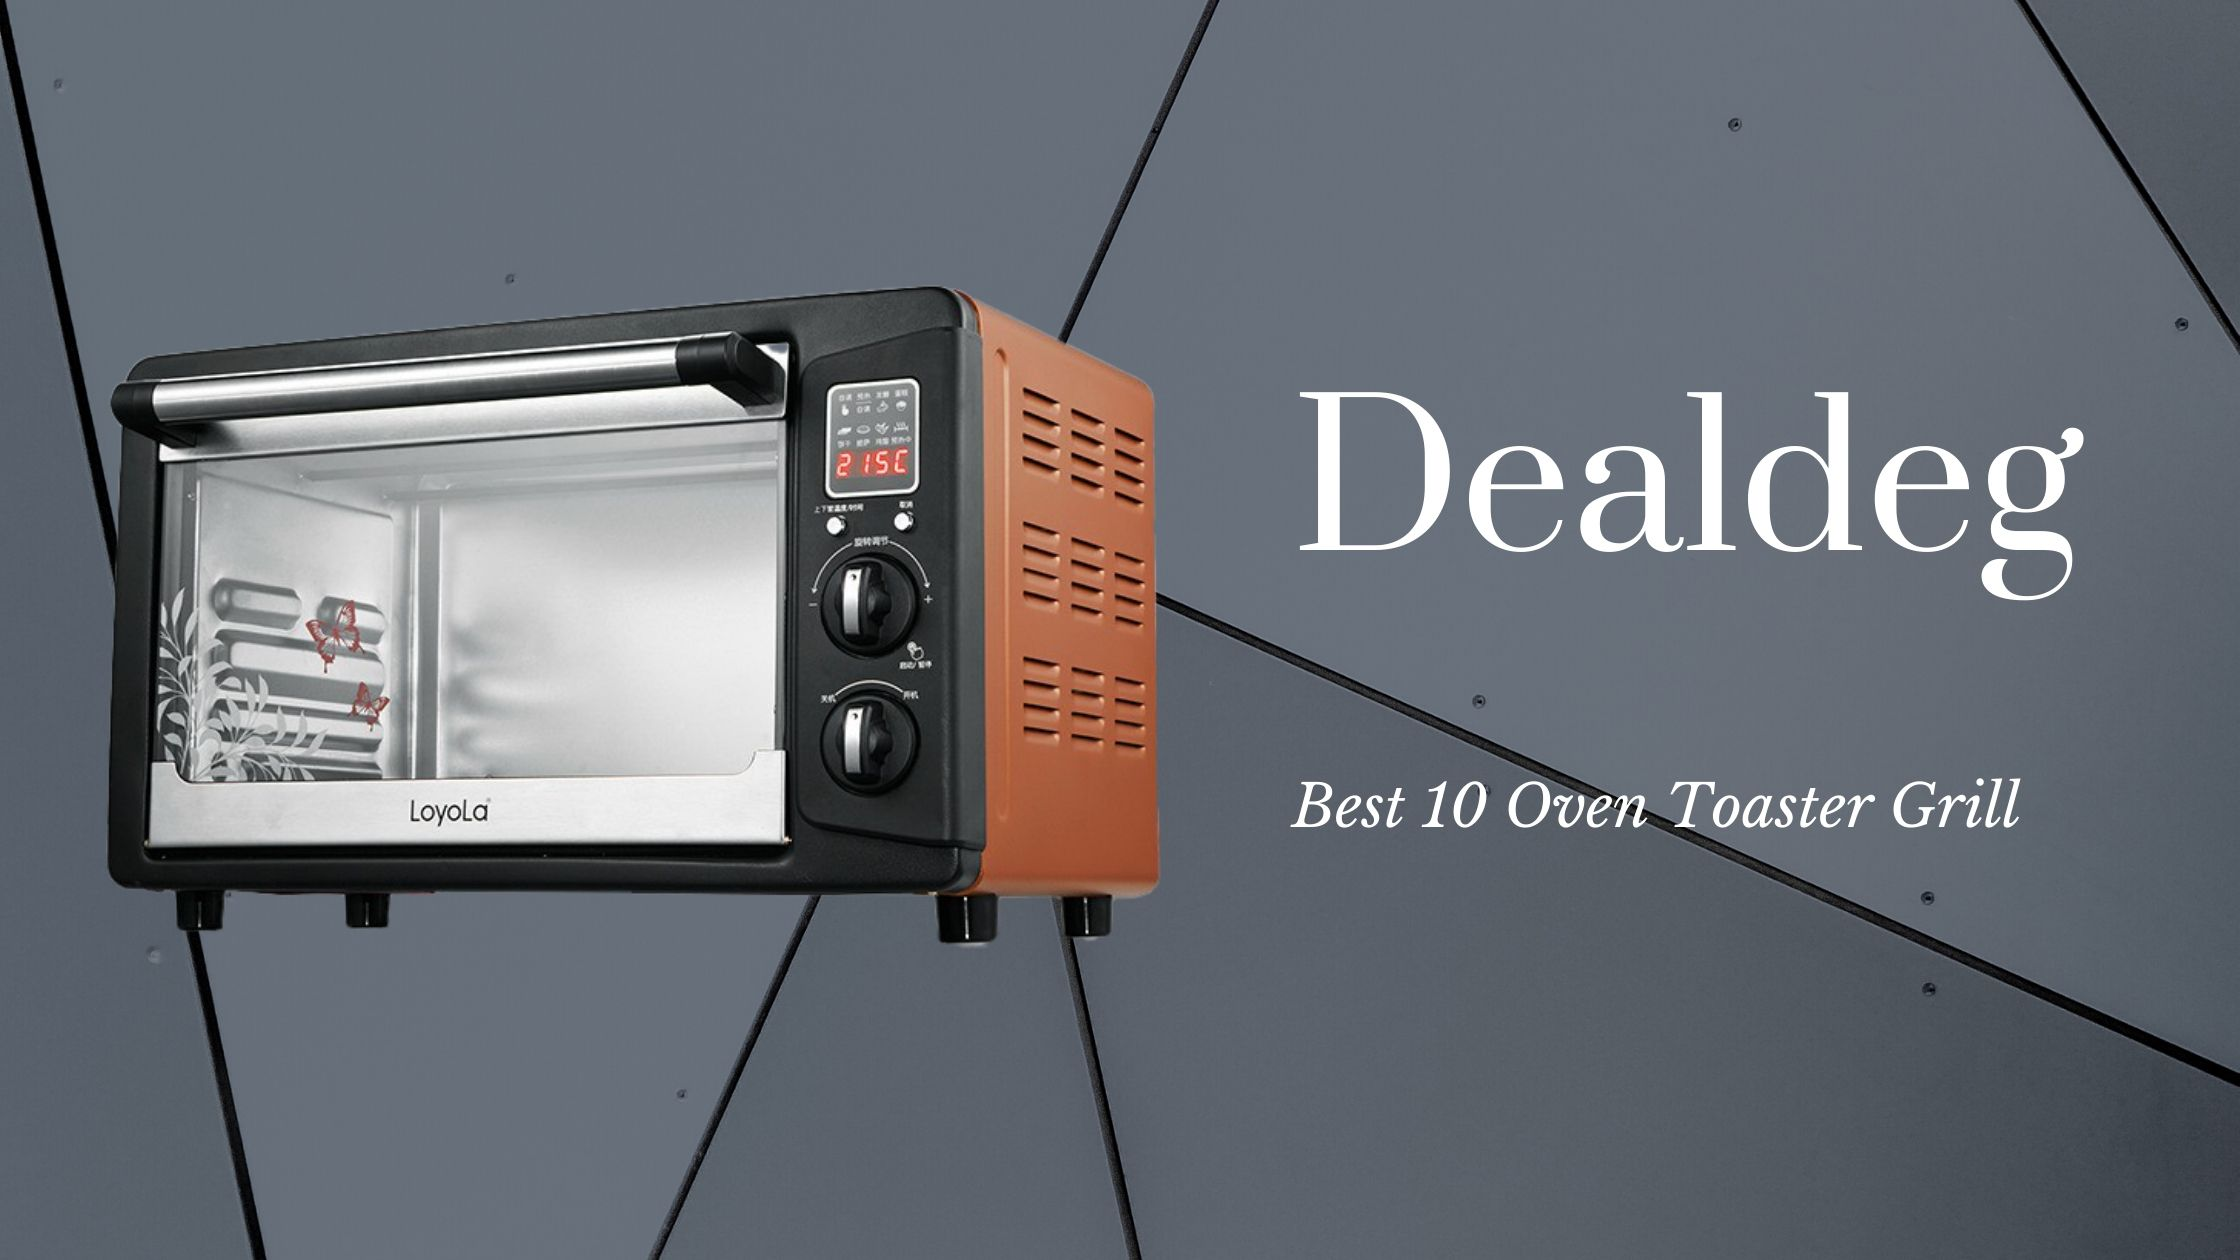 Best 10 Oven Toaster Grill under Rs.8500.